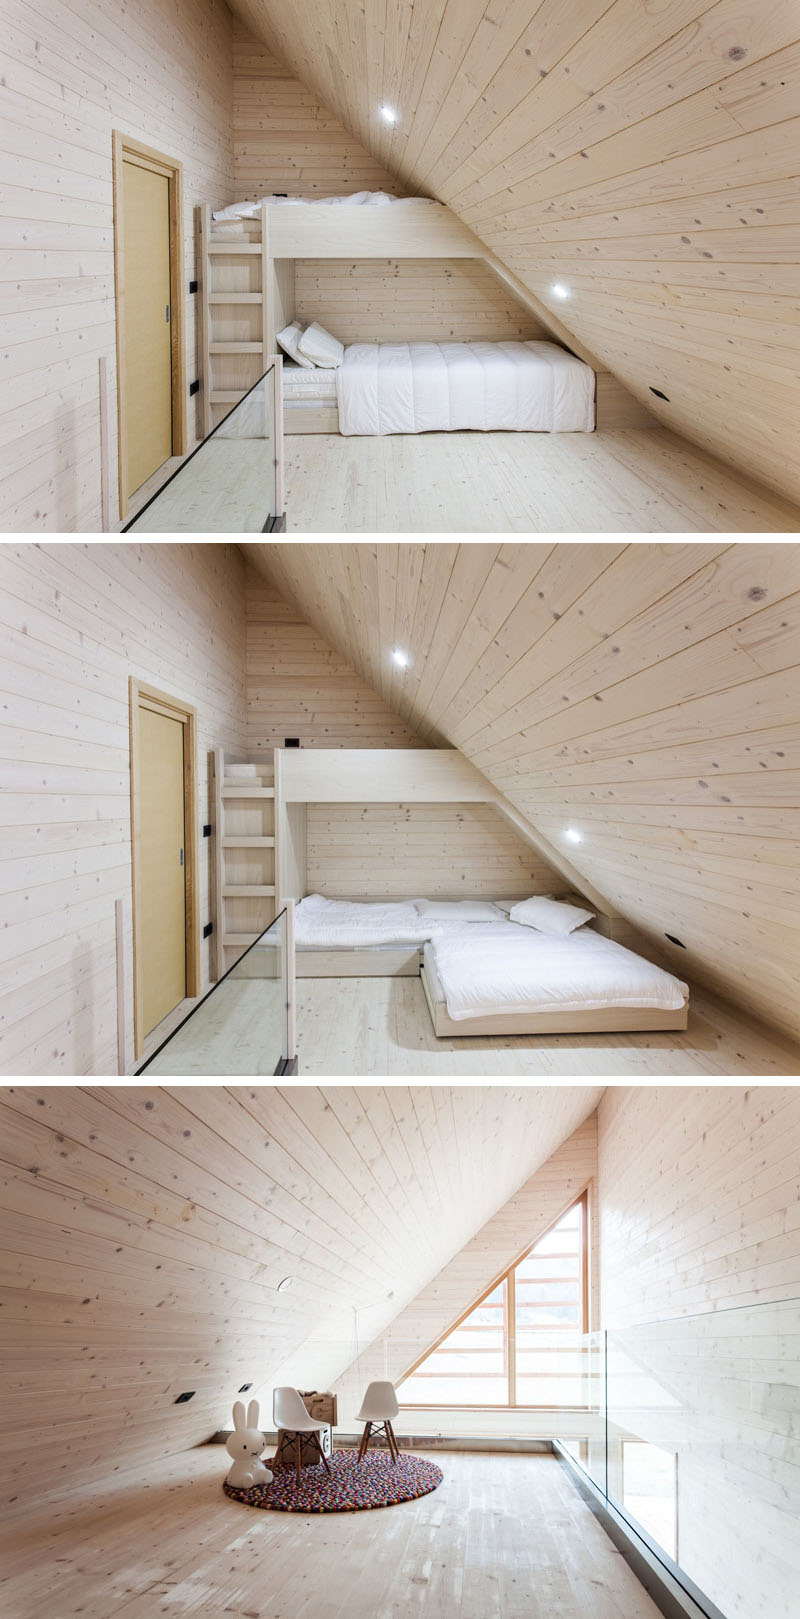 small-kids-bedroom-with-sloped-ceiling-260417-110-08